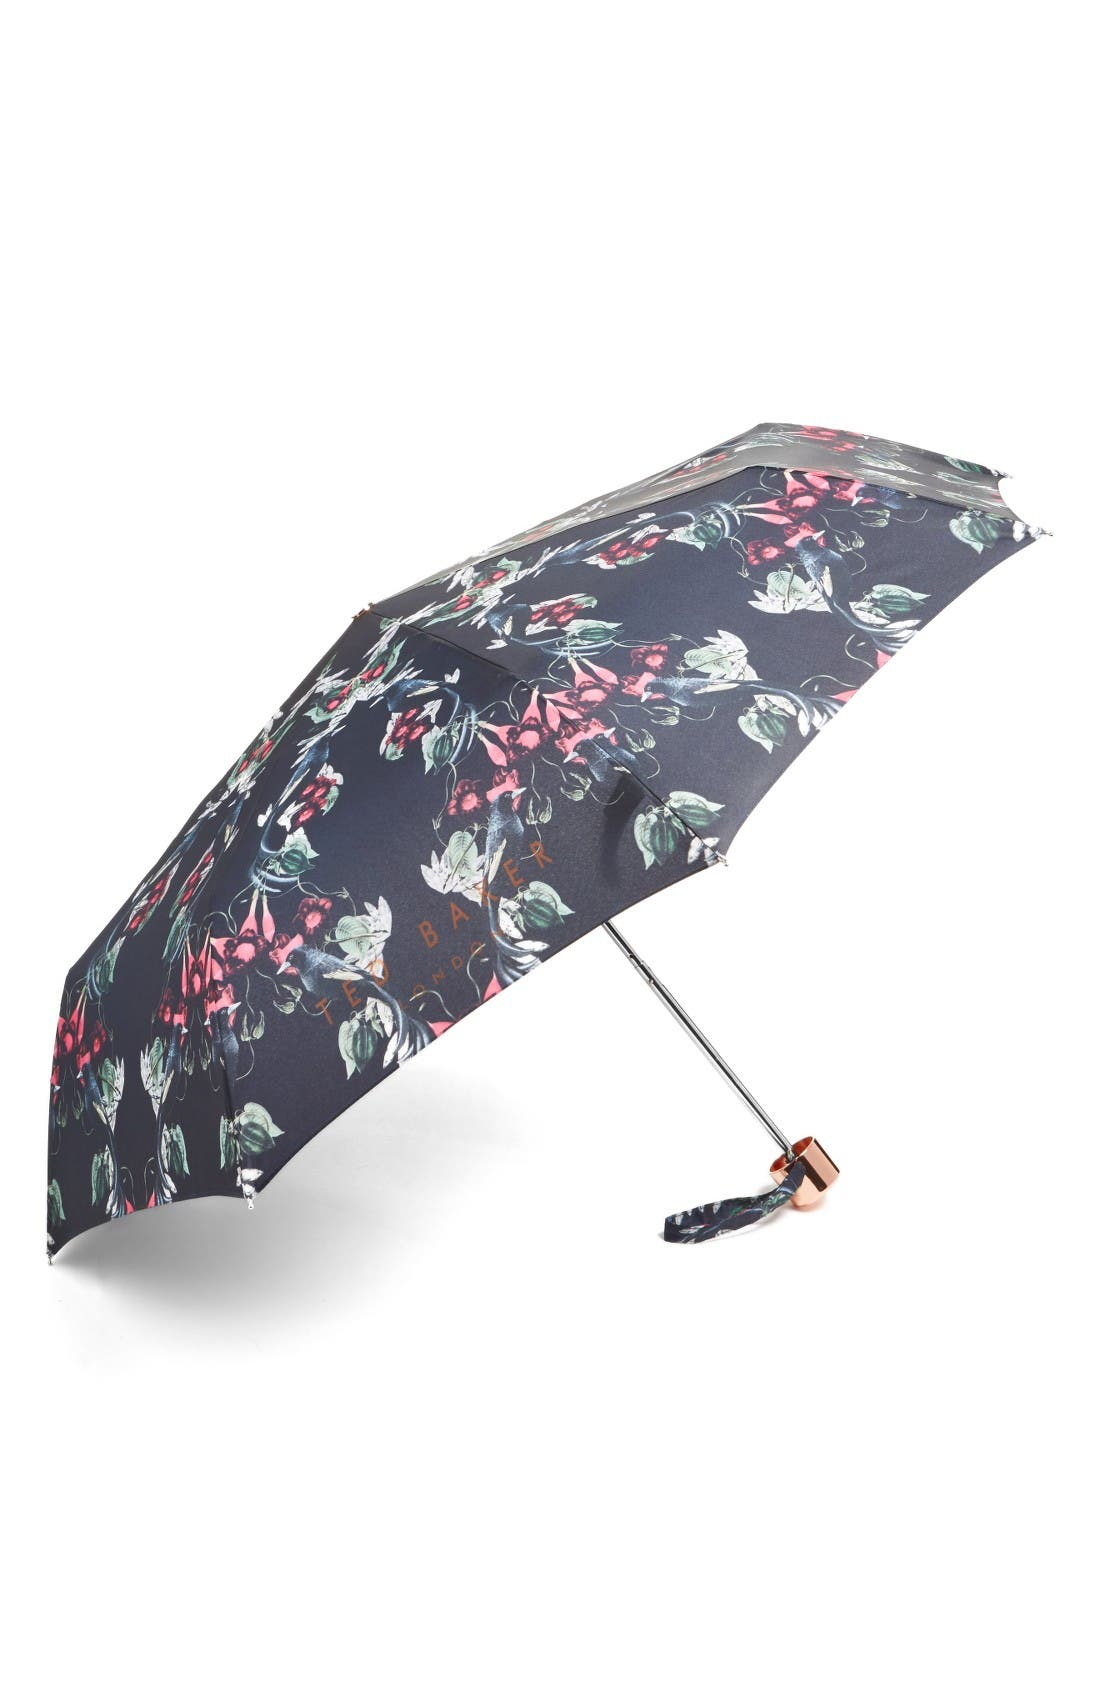 Ted Baker London 'Blue Beauty' Umbrella